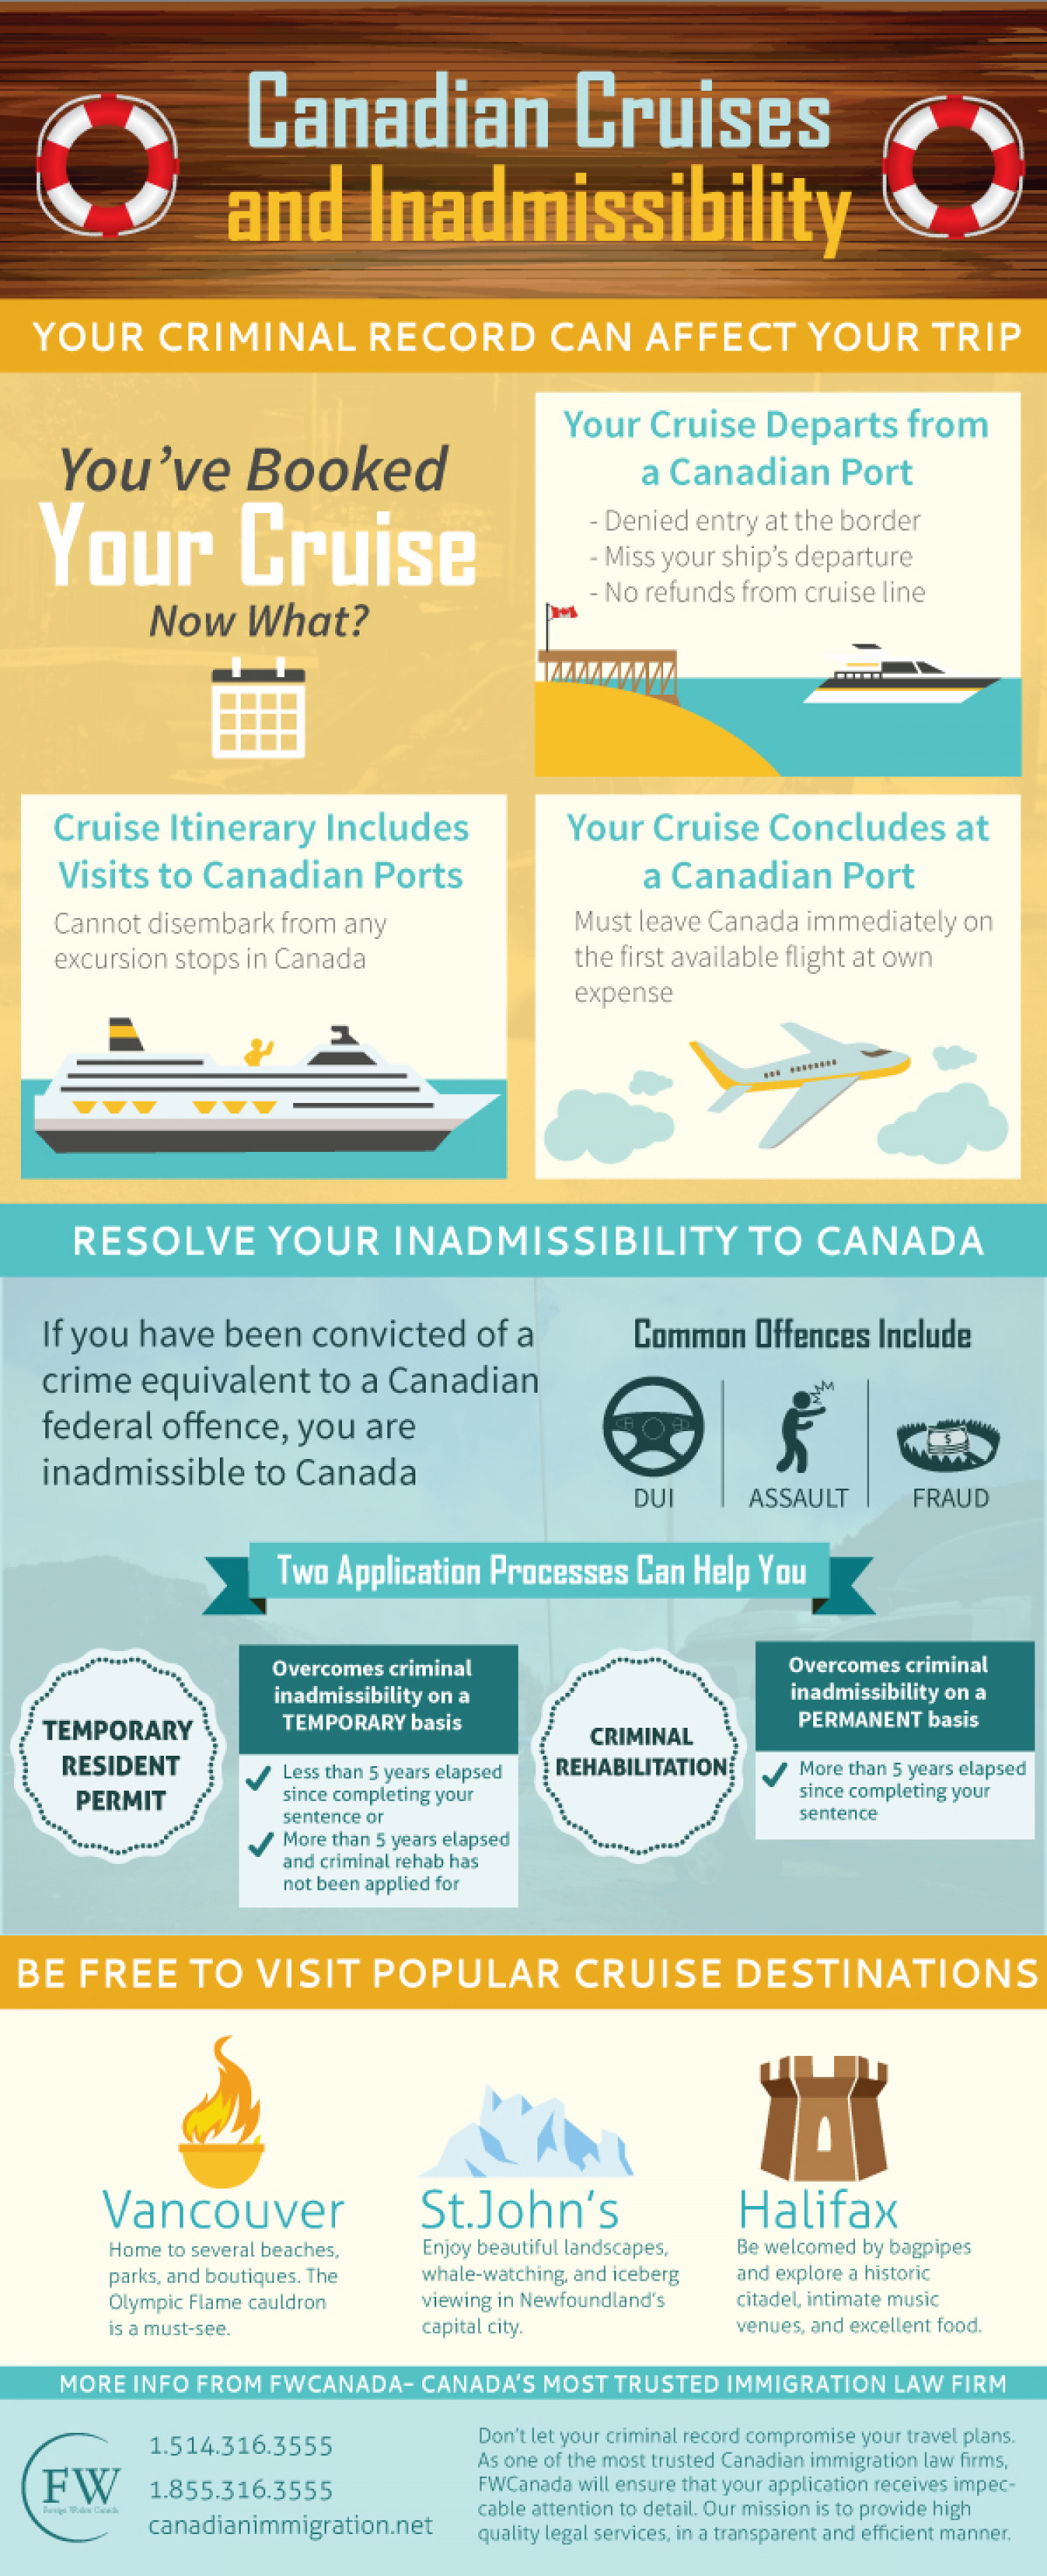 Canadian Cruises and Inadmissibility Infographic